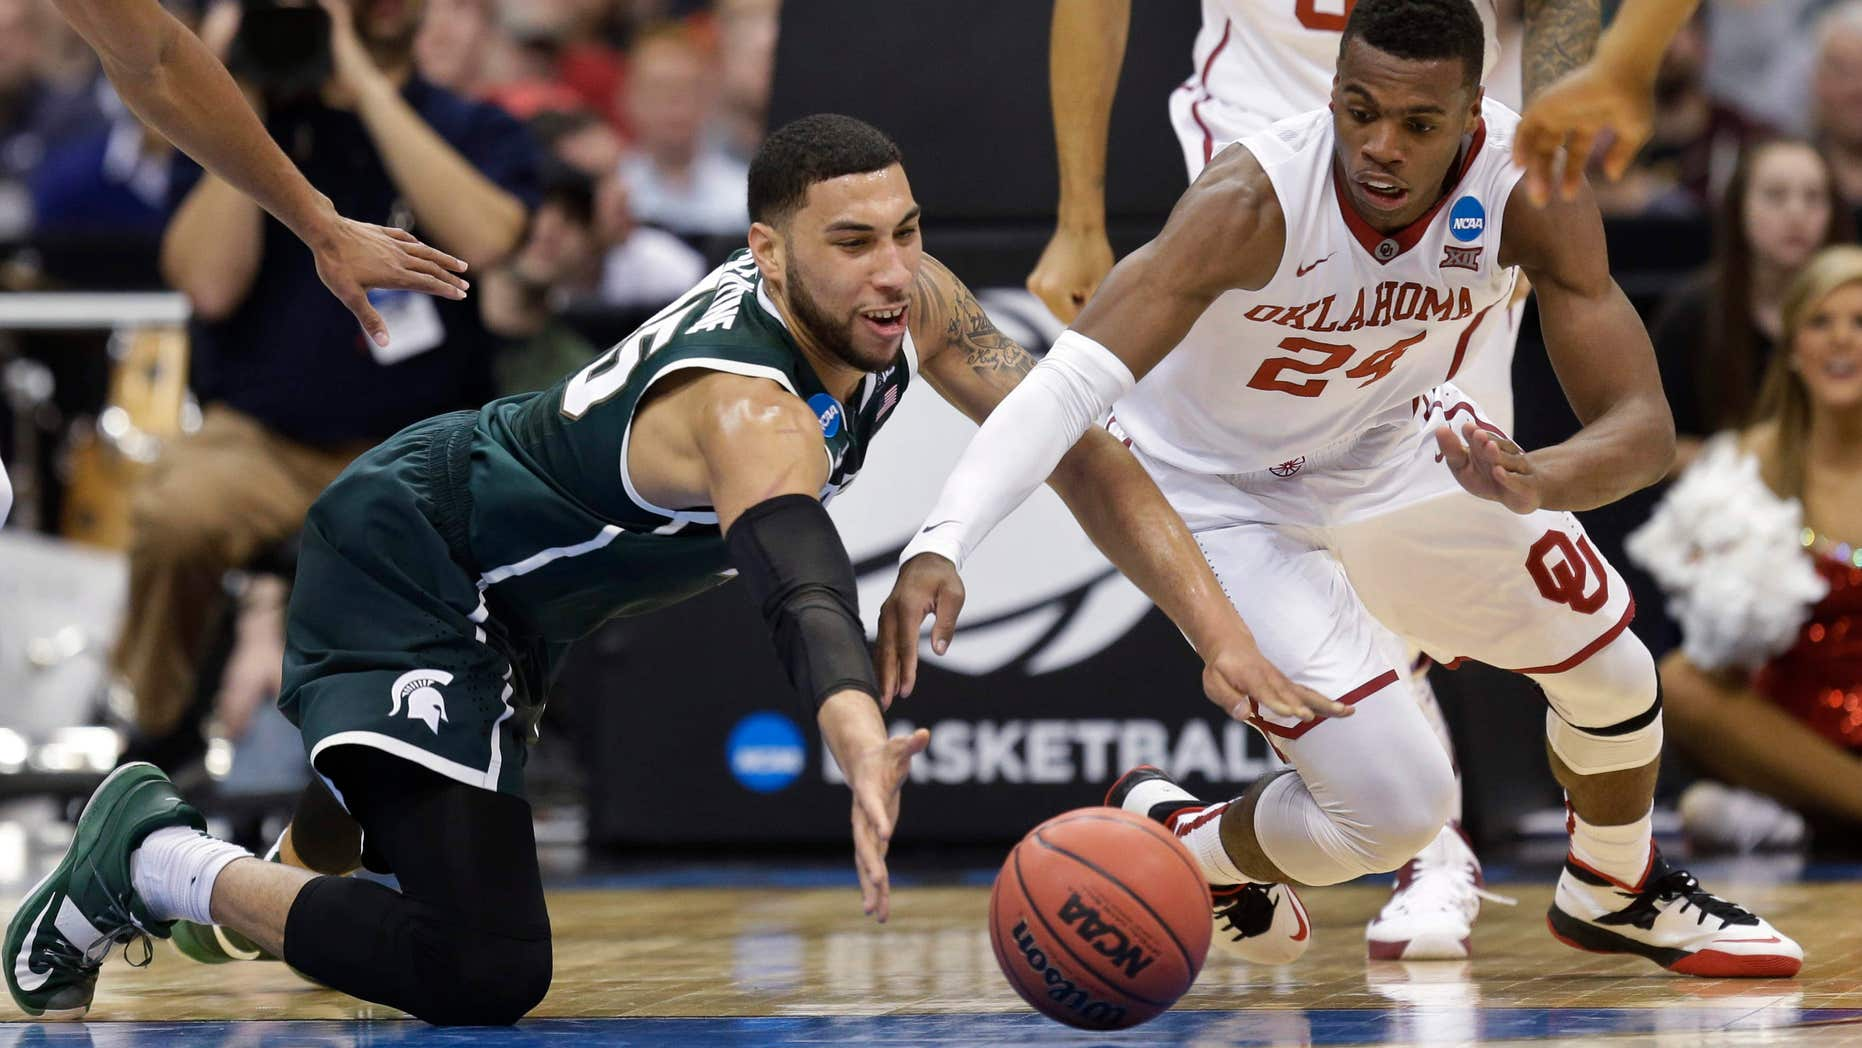 March 27, 2015: Michigan State's Denzel Valentine (45) and Oklahoma's Buddy Hield (24) dive for the ball during the first half of a regional semifinal in the NCAA men's college basketball tournament .